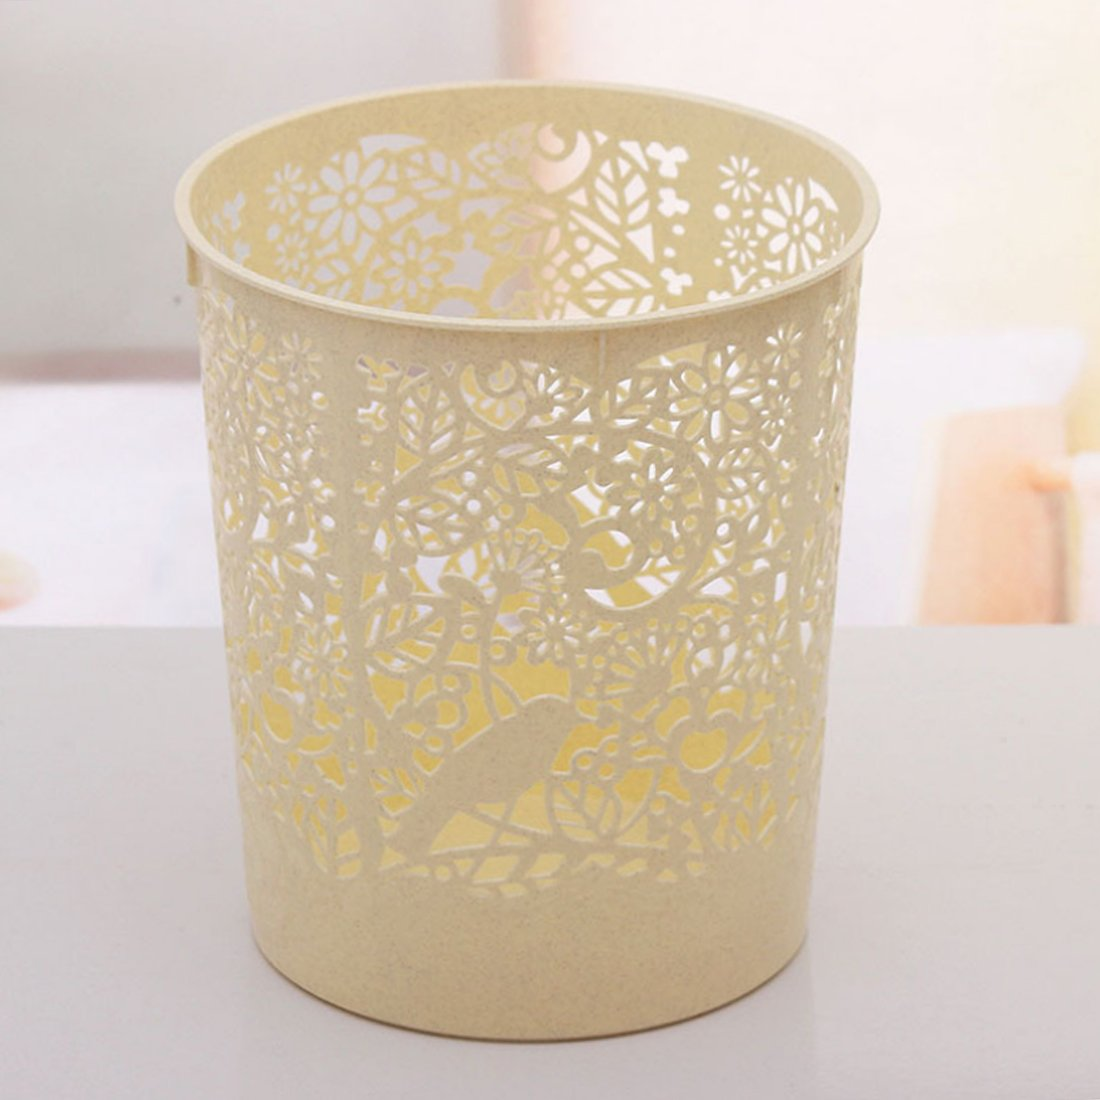 3pcs Waste Bins, XSHION Creative Hollowed-out Kitchen Trash Can Waste Paper Baskets Office Garbage Bins (3pcs Light Yellow)